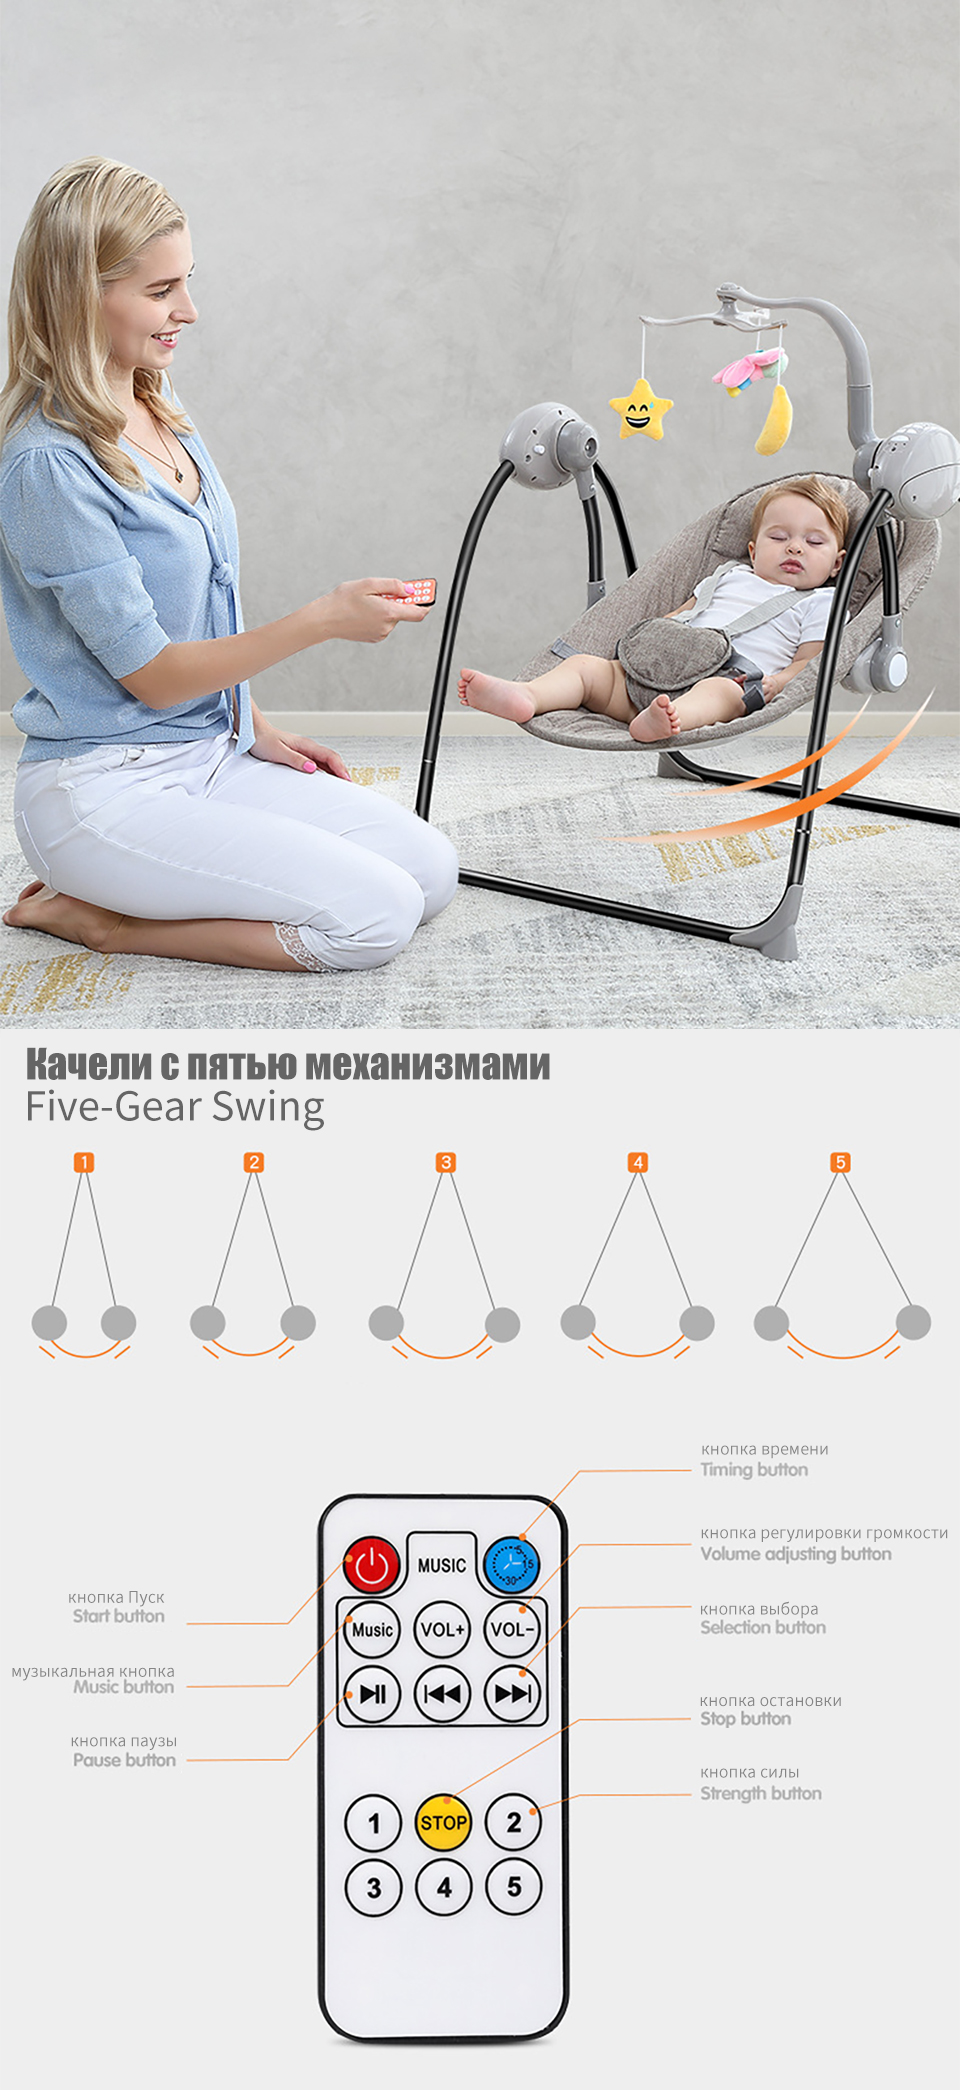 H15b4bca8891942fe9e5d0a373769feebk IMBABY New Baby Electric Rocking Chair Cradle Foldable Baby Comfort Recliner for Newborn Bebe Safety Comfort Rocker Swings Chair